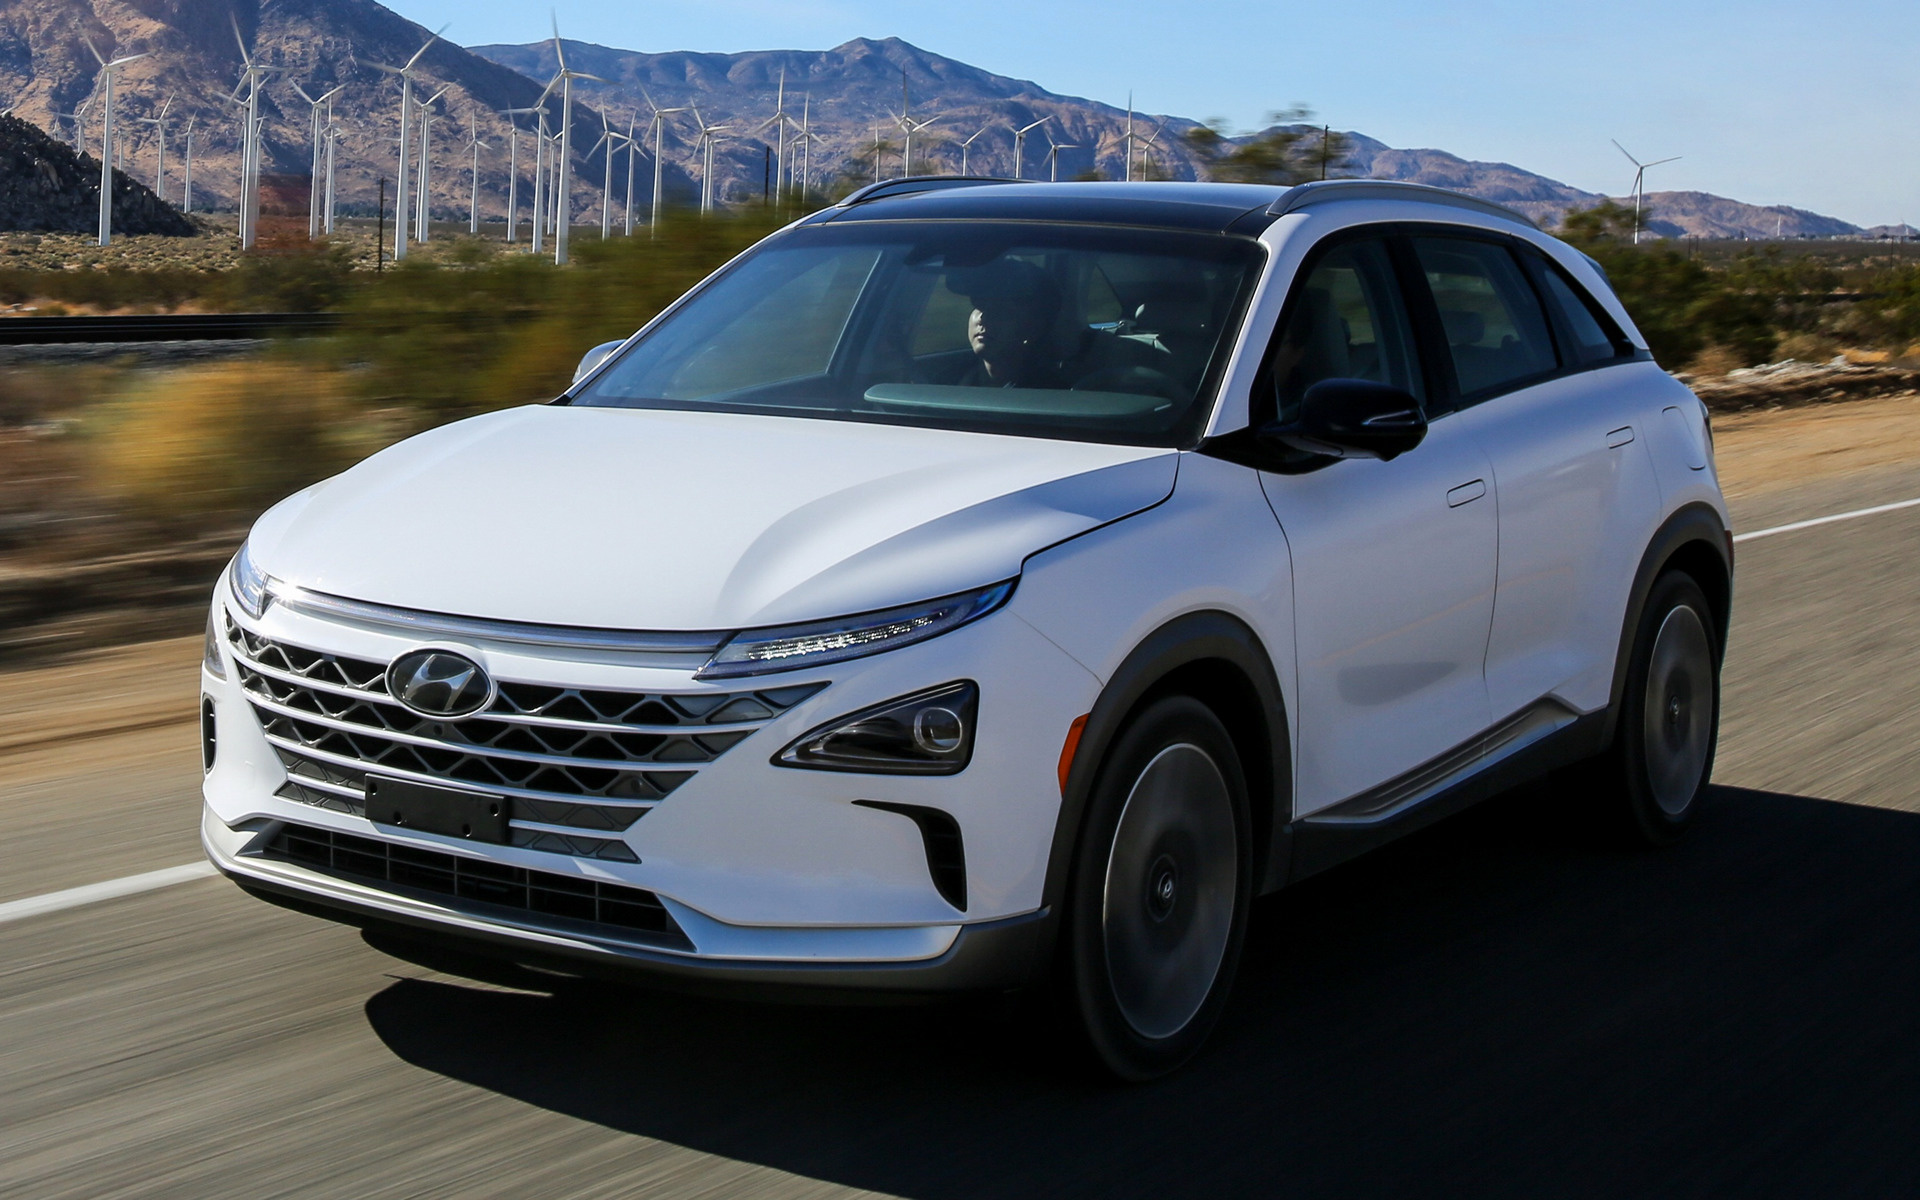 2019 Hyundai Nexo US   Wallpapers and HD Images Car Pixel 1920x1200